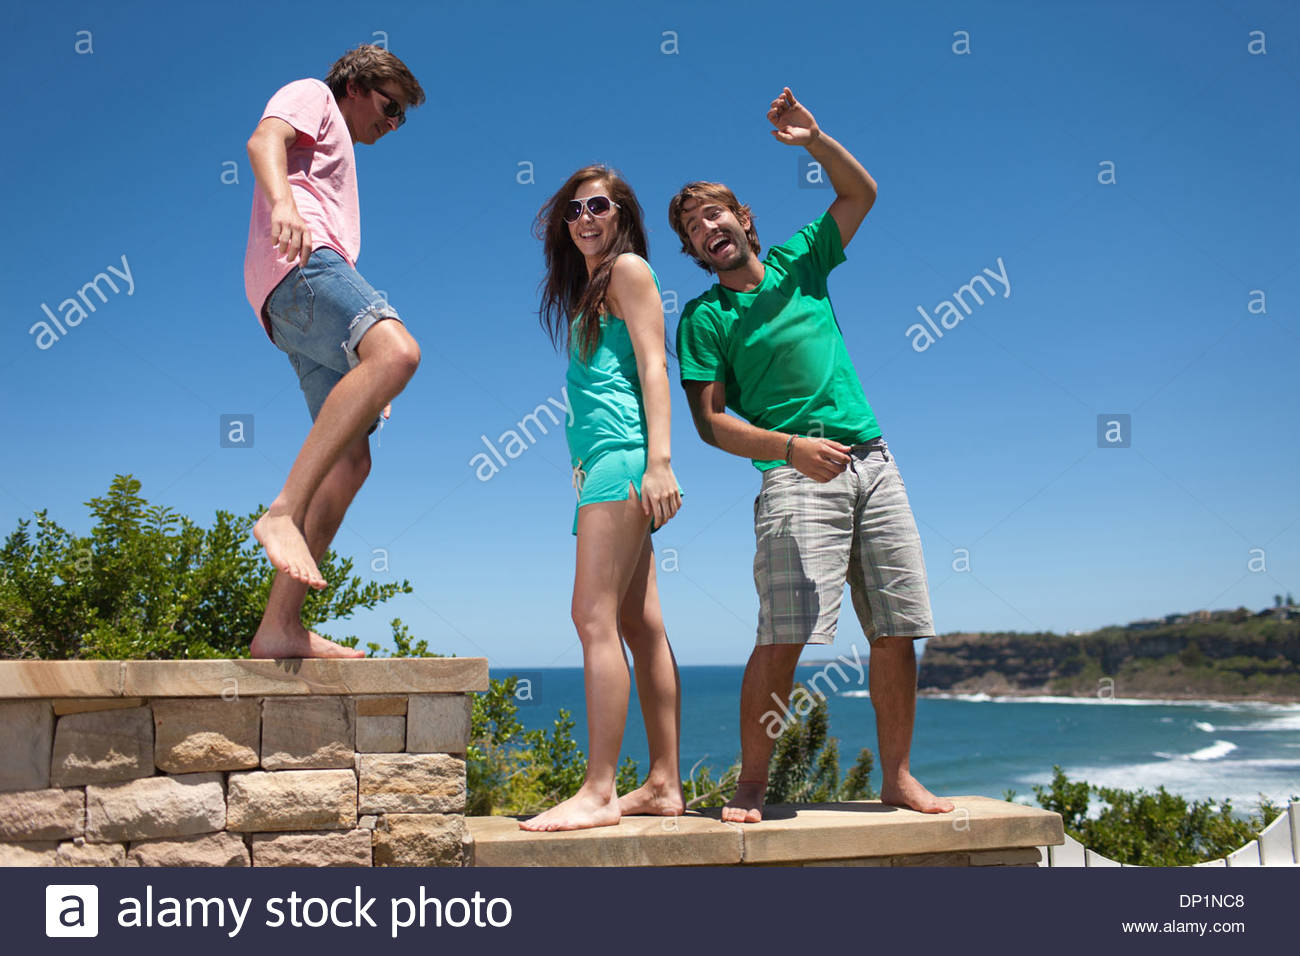 Friends playing on patio - Stock Image